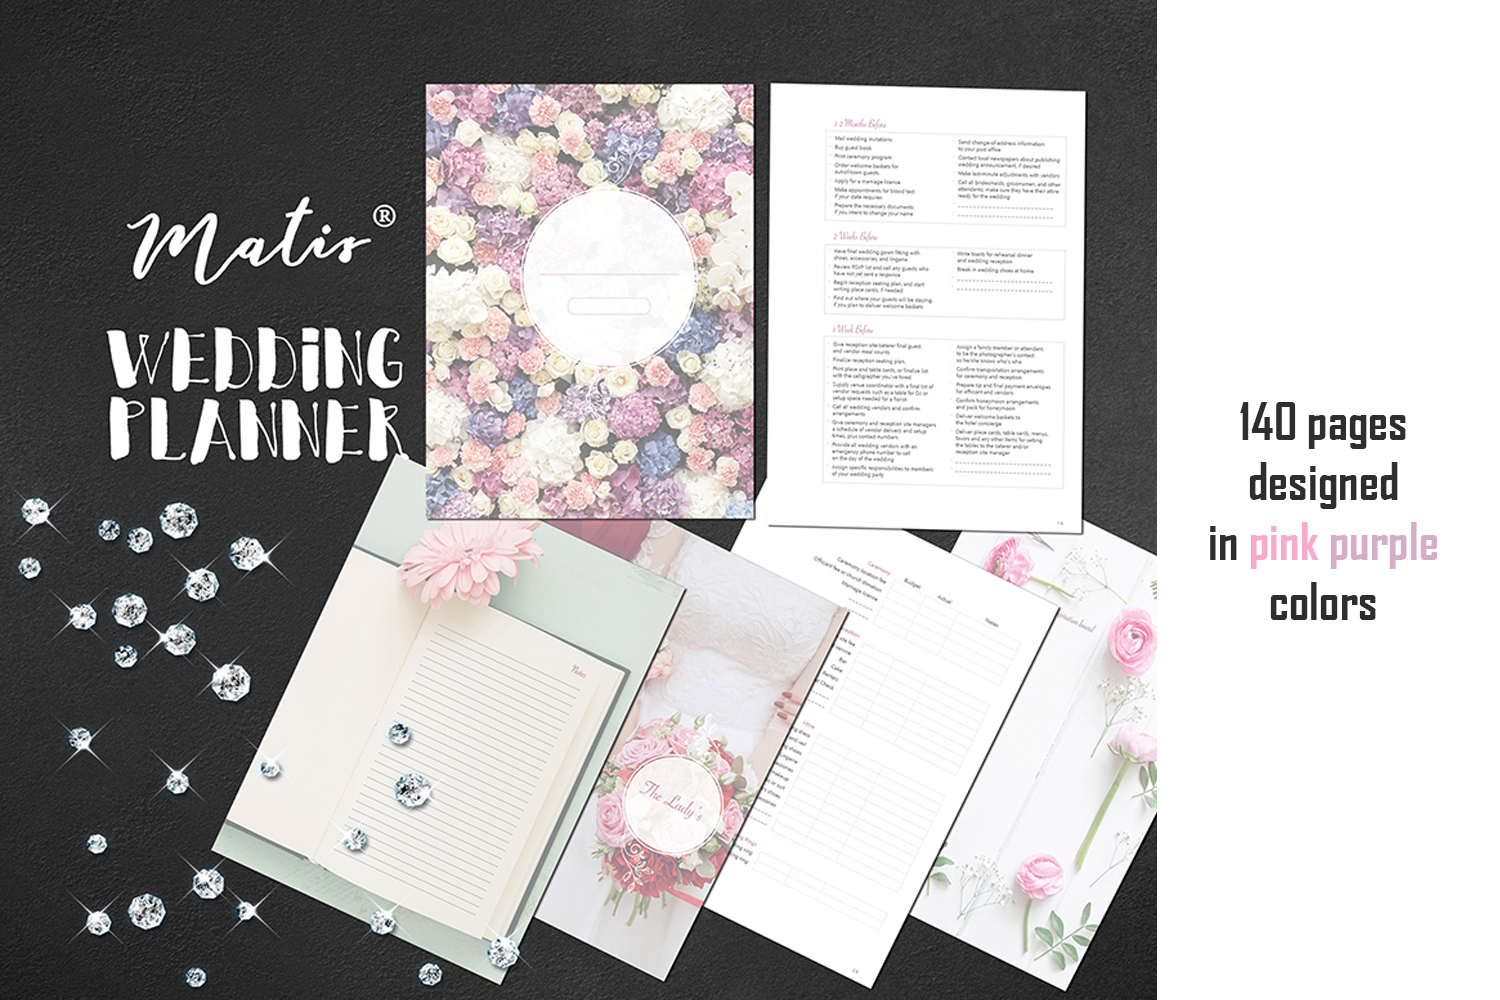 Wedding planner printable / personalization included example image 2